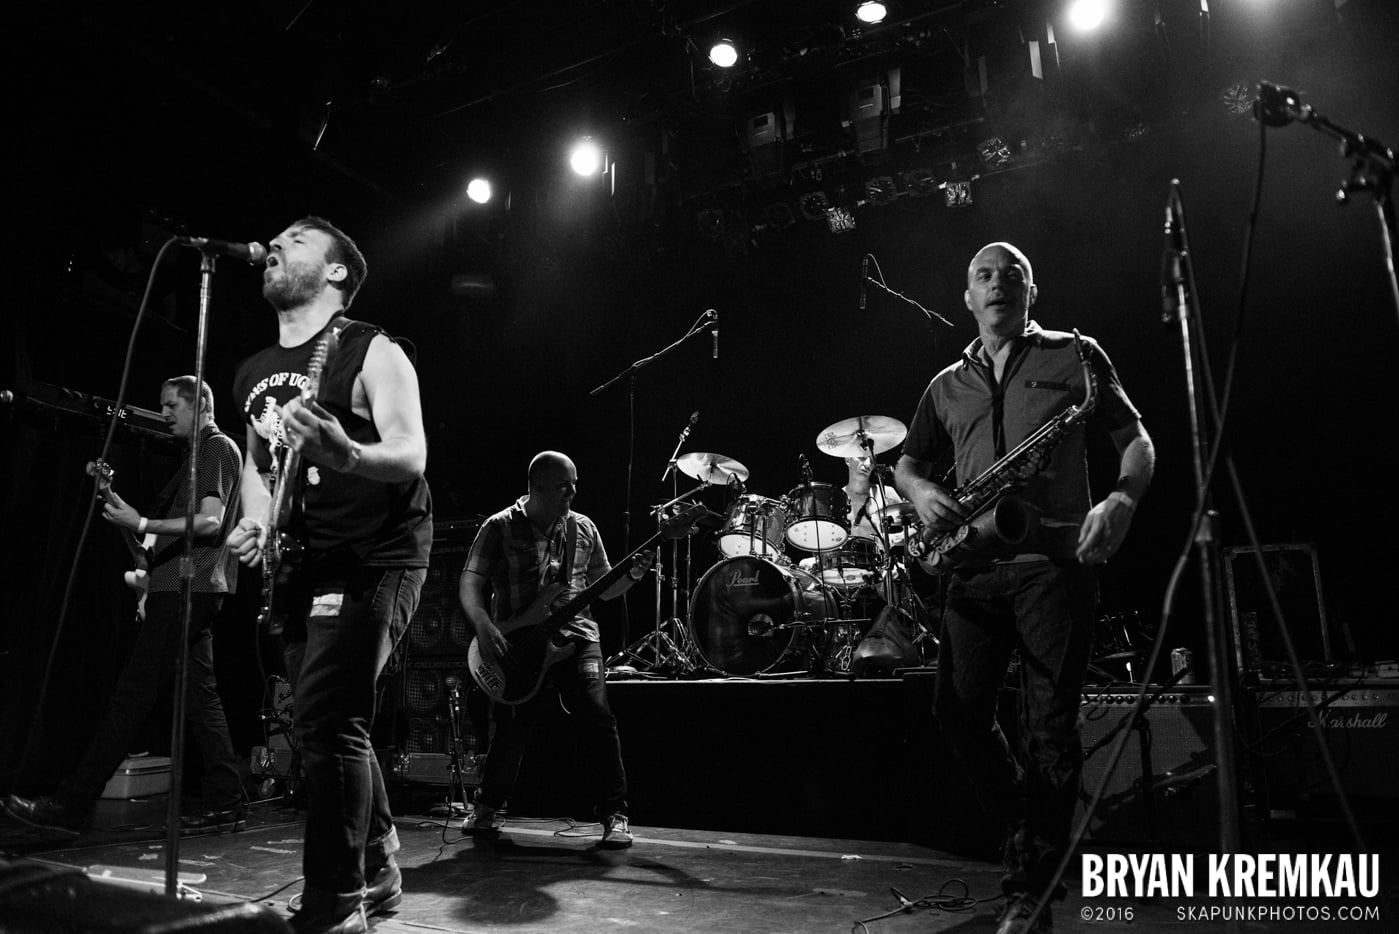 Thumper @ Apple Stomp: Day 2, Irving Plaza, NYC - June 1st 2013 - Bryan Kremkau (20)